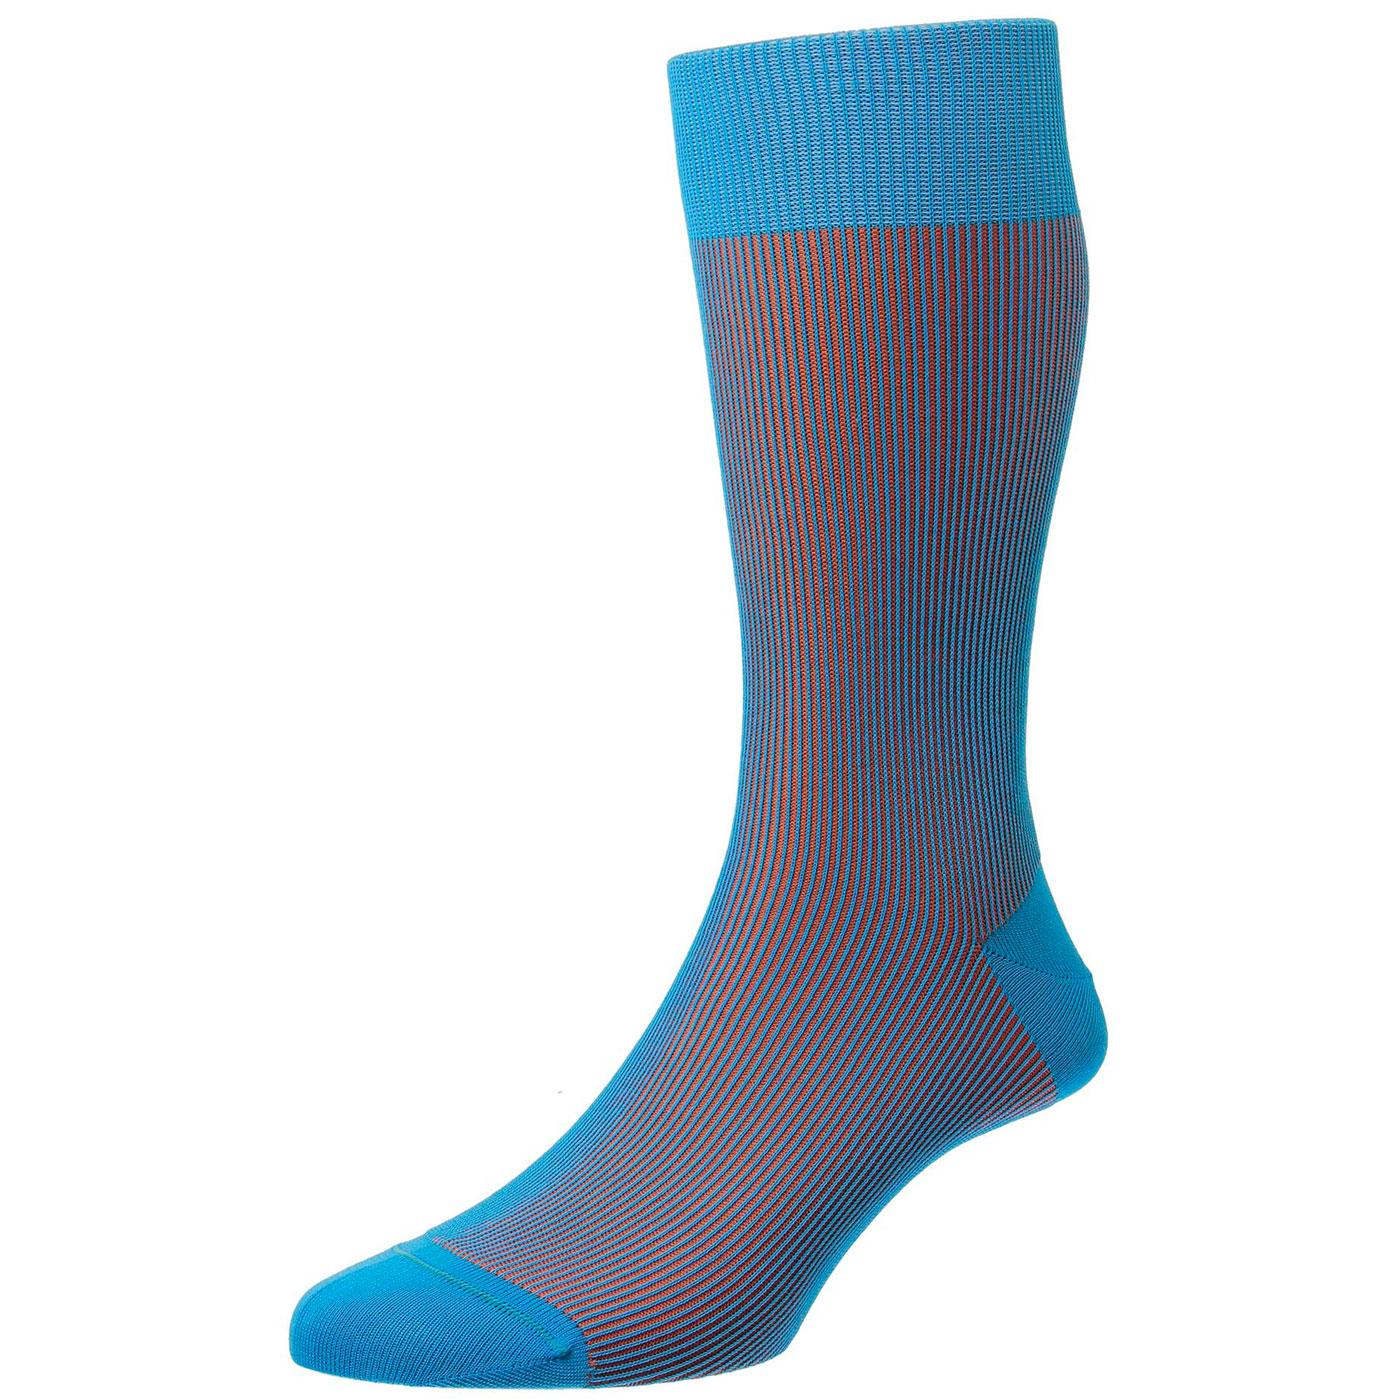 + Santos PANTHERELLA Men's Tonic Effect Socks T